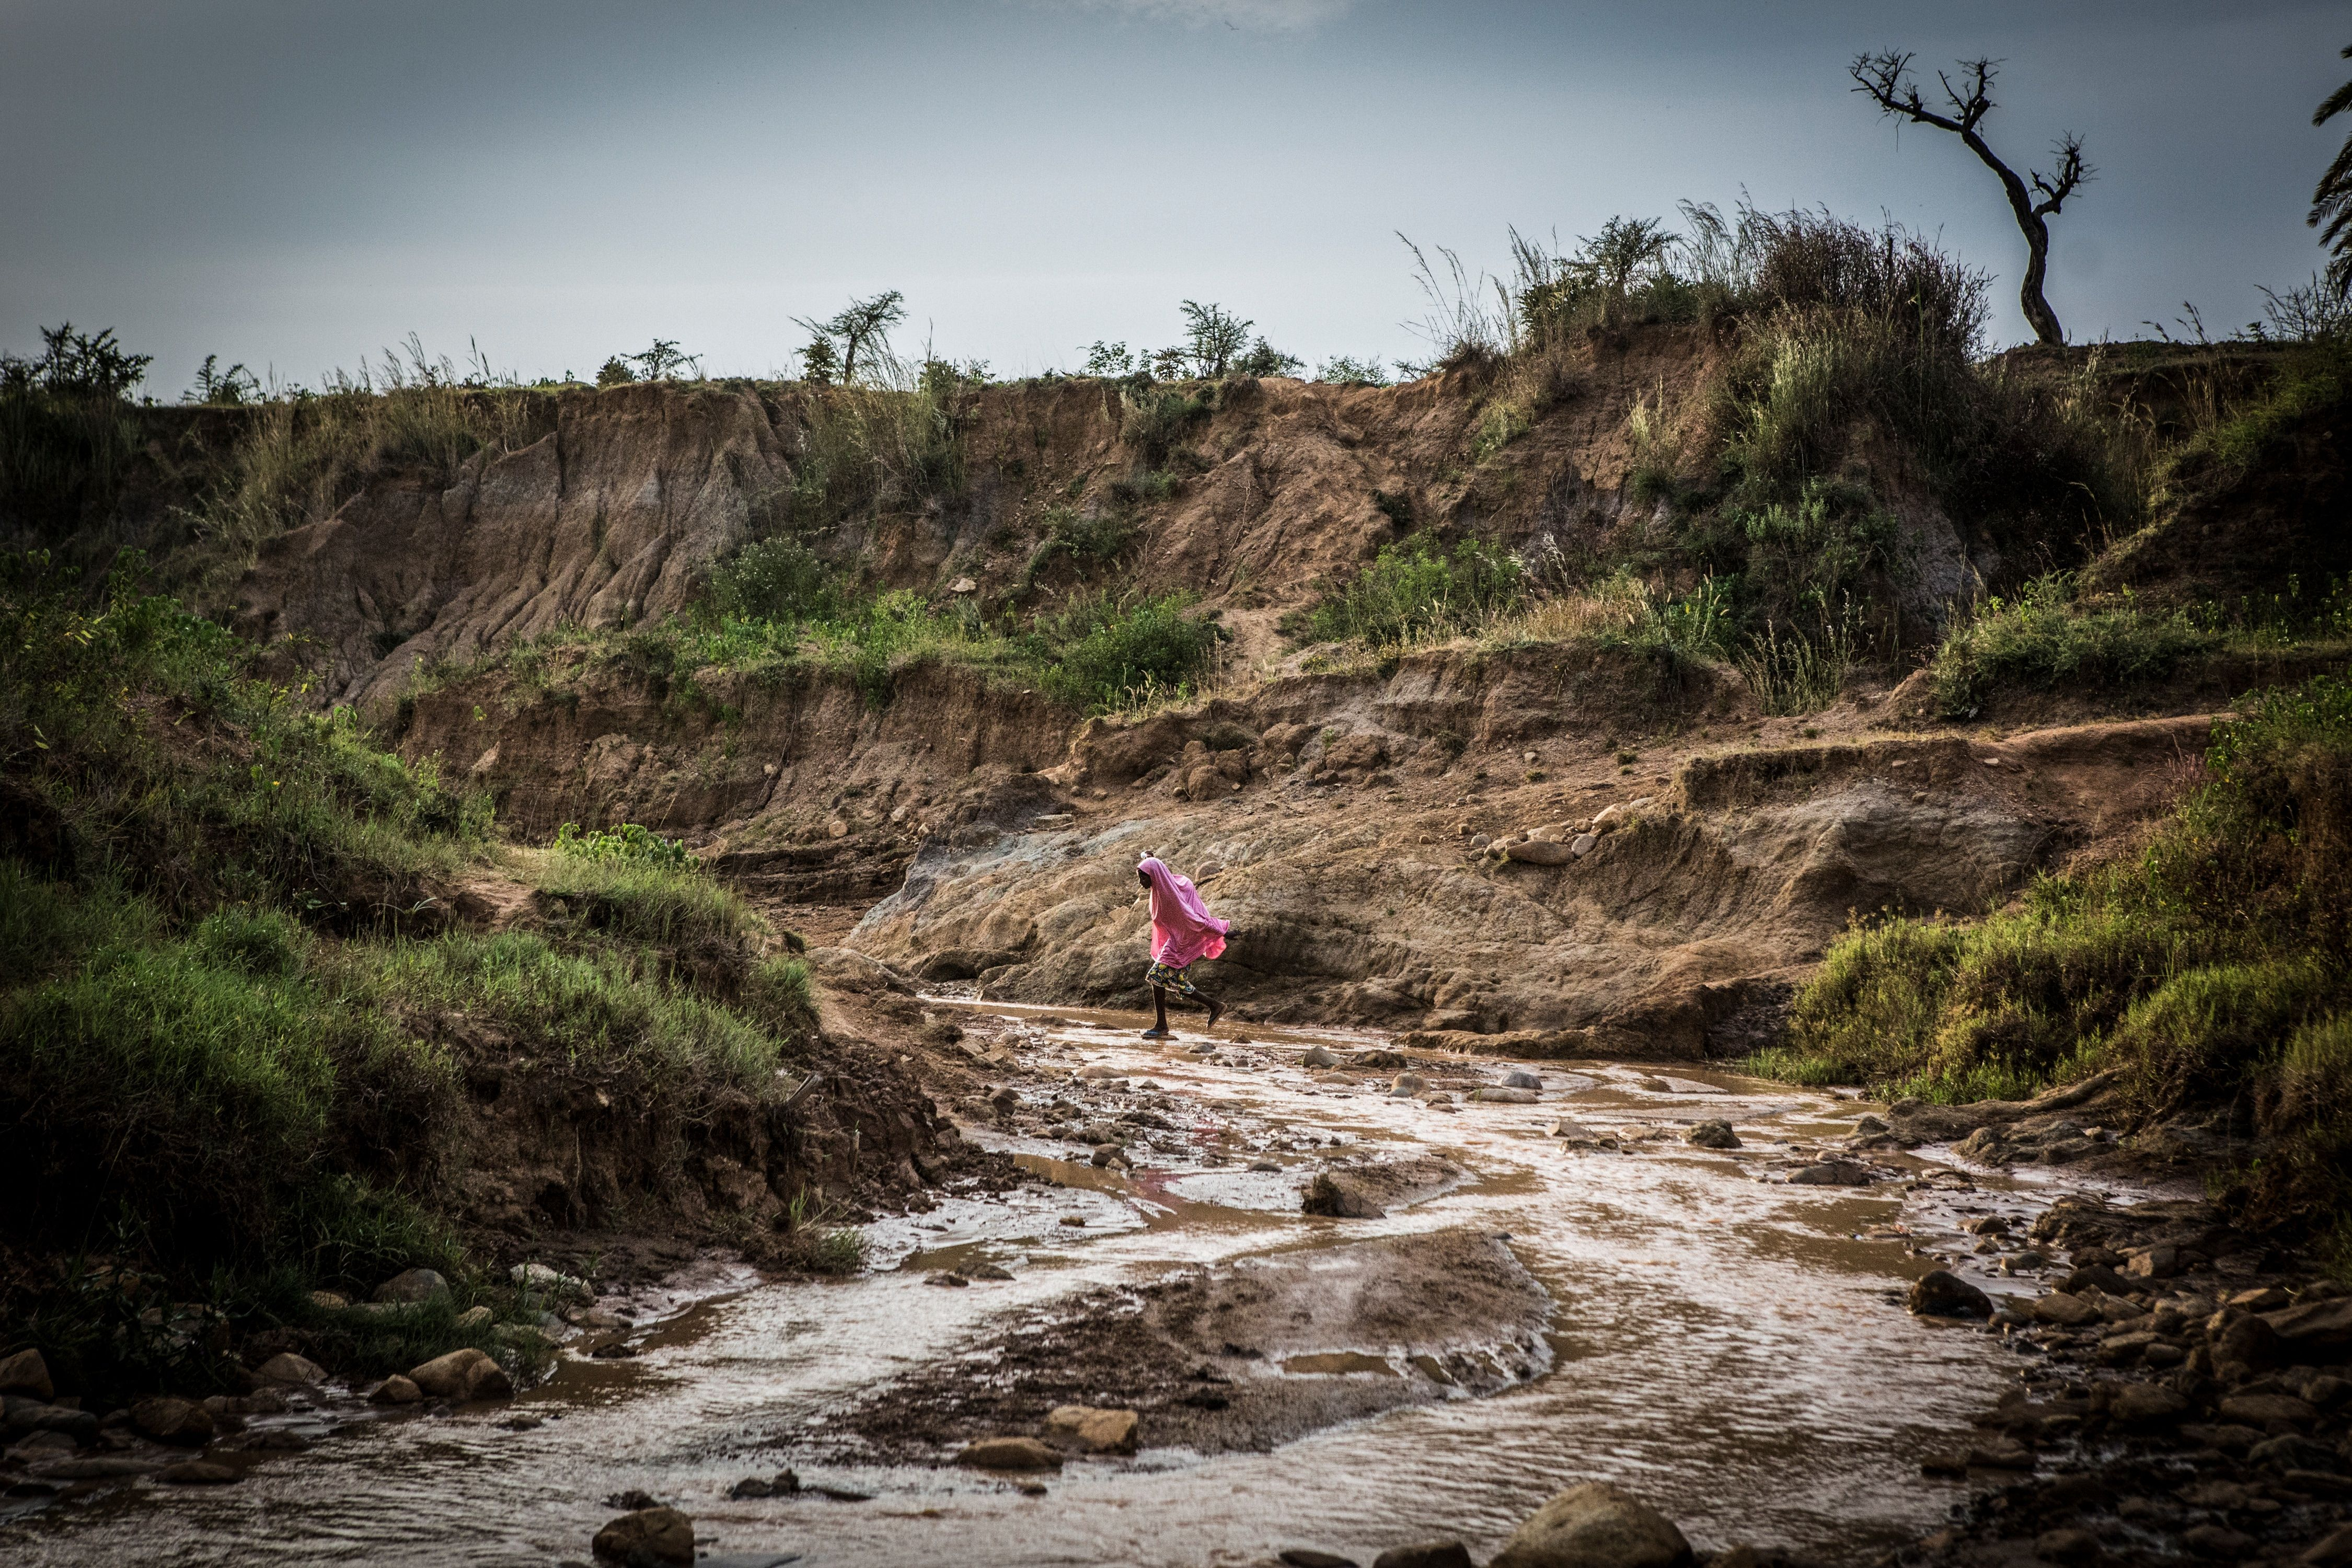 A stream near Nghar Village in Nigeria's Gashish District, where more than 200 people were killed in June by men thought to be cattle herders. Those killed were part of the farming community, which uses land the herders covet. Image by Jane Hahn. Nigeria, 2018.